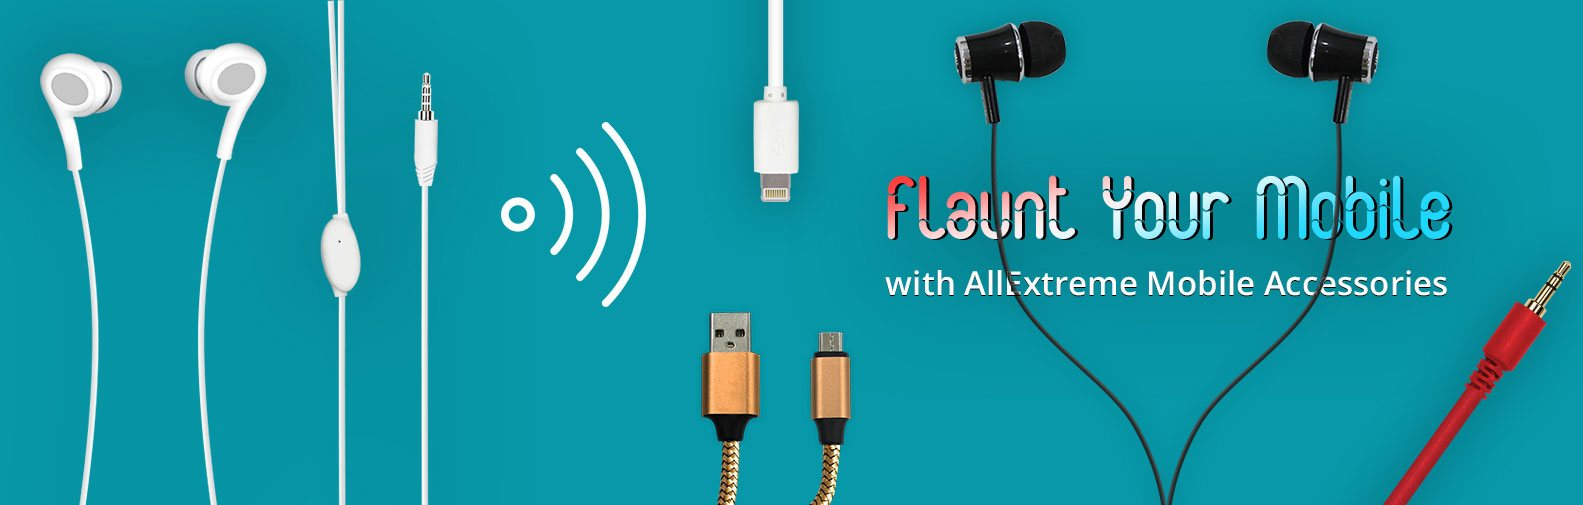 Flaunt Your Mobile with AllExtreme Mobile Accessories